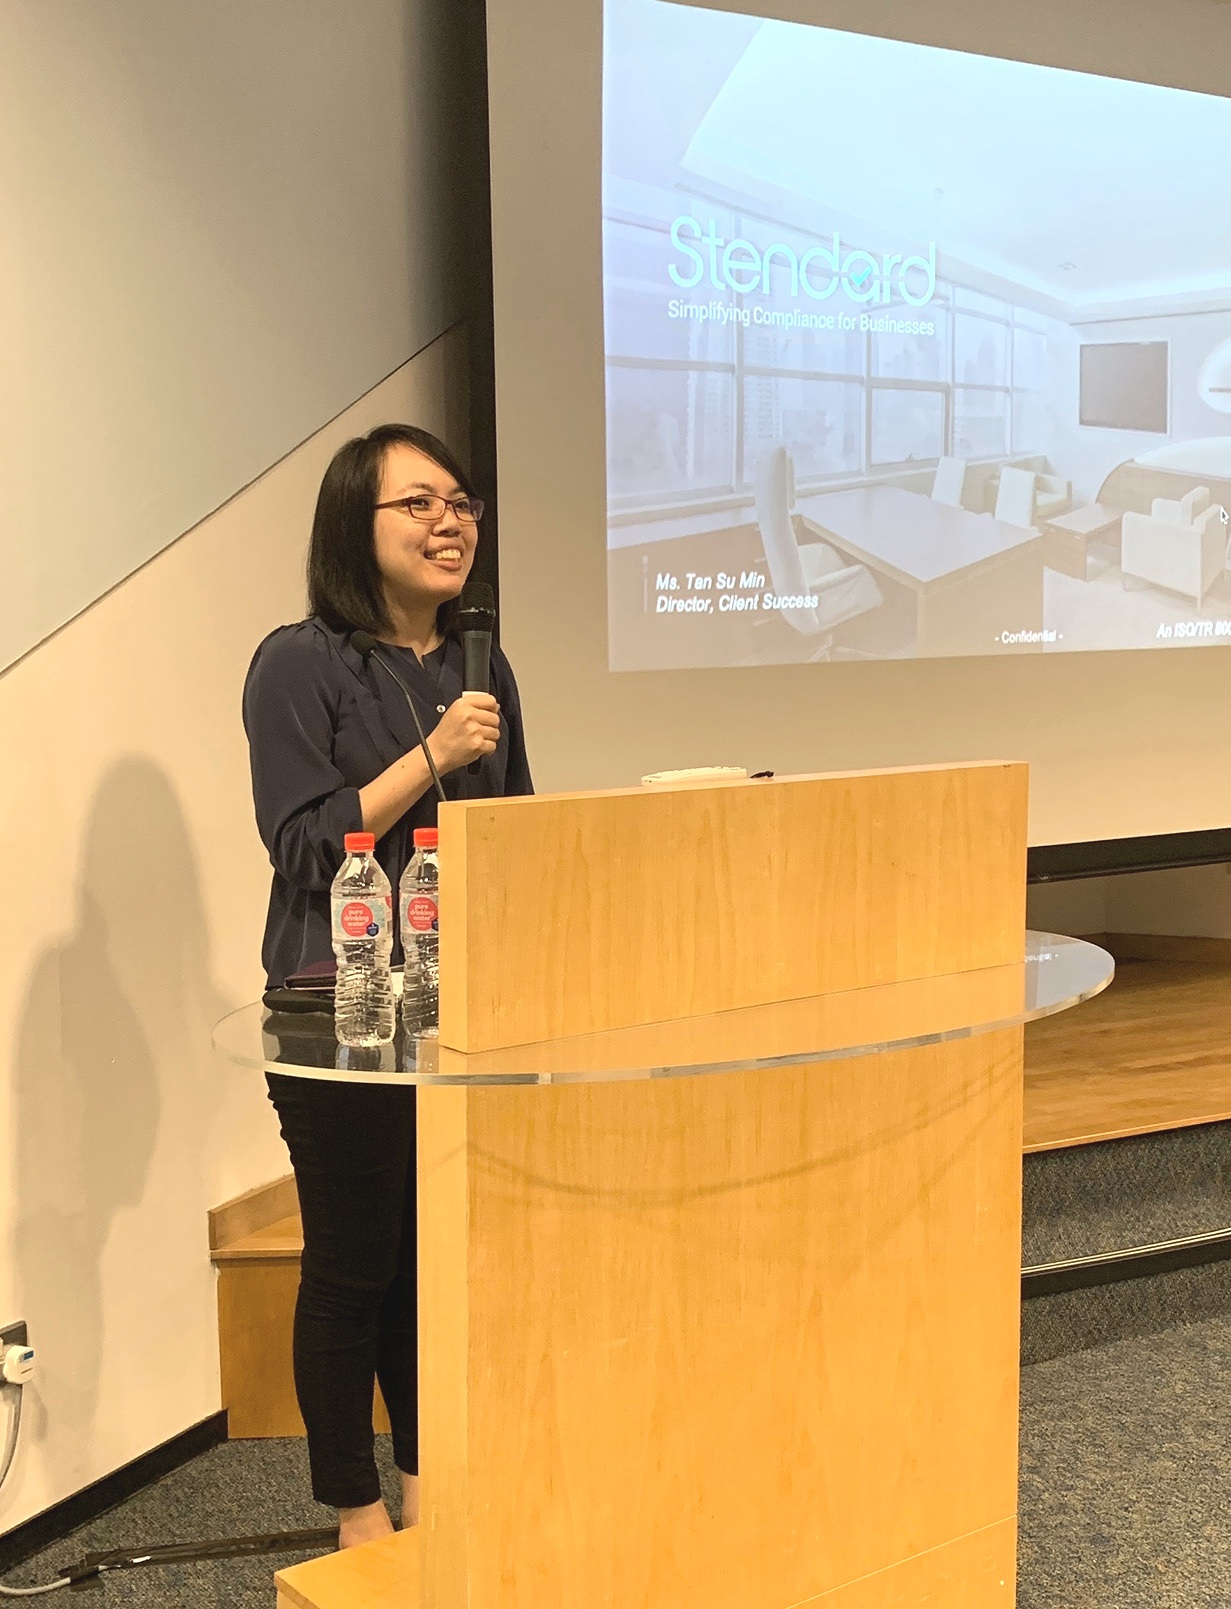 Ms Tan Su Min - Director of Client Success, Stendard - Addressing the crowd at SHEF 2019